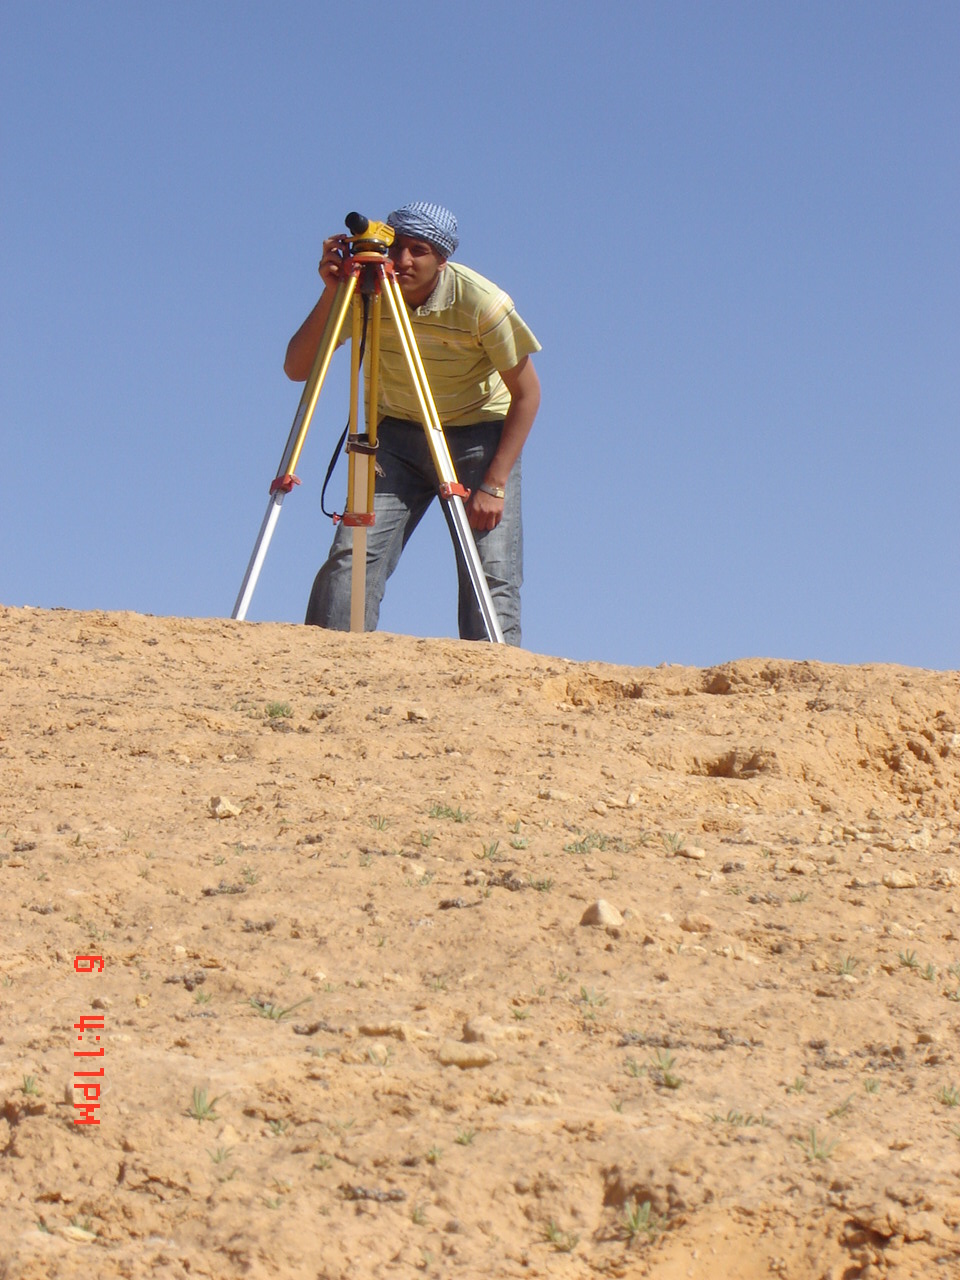 Qualifications for Land Surveyors